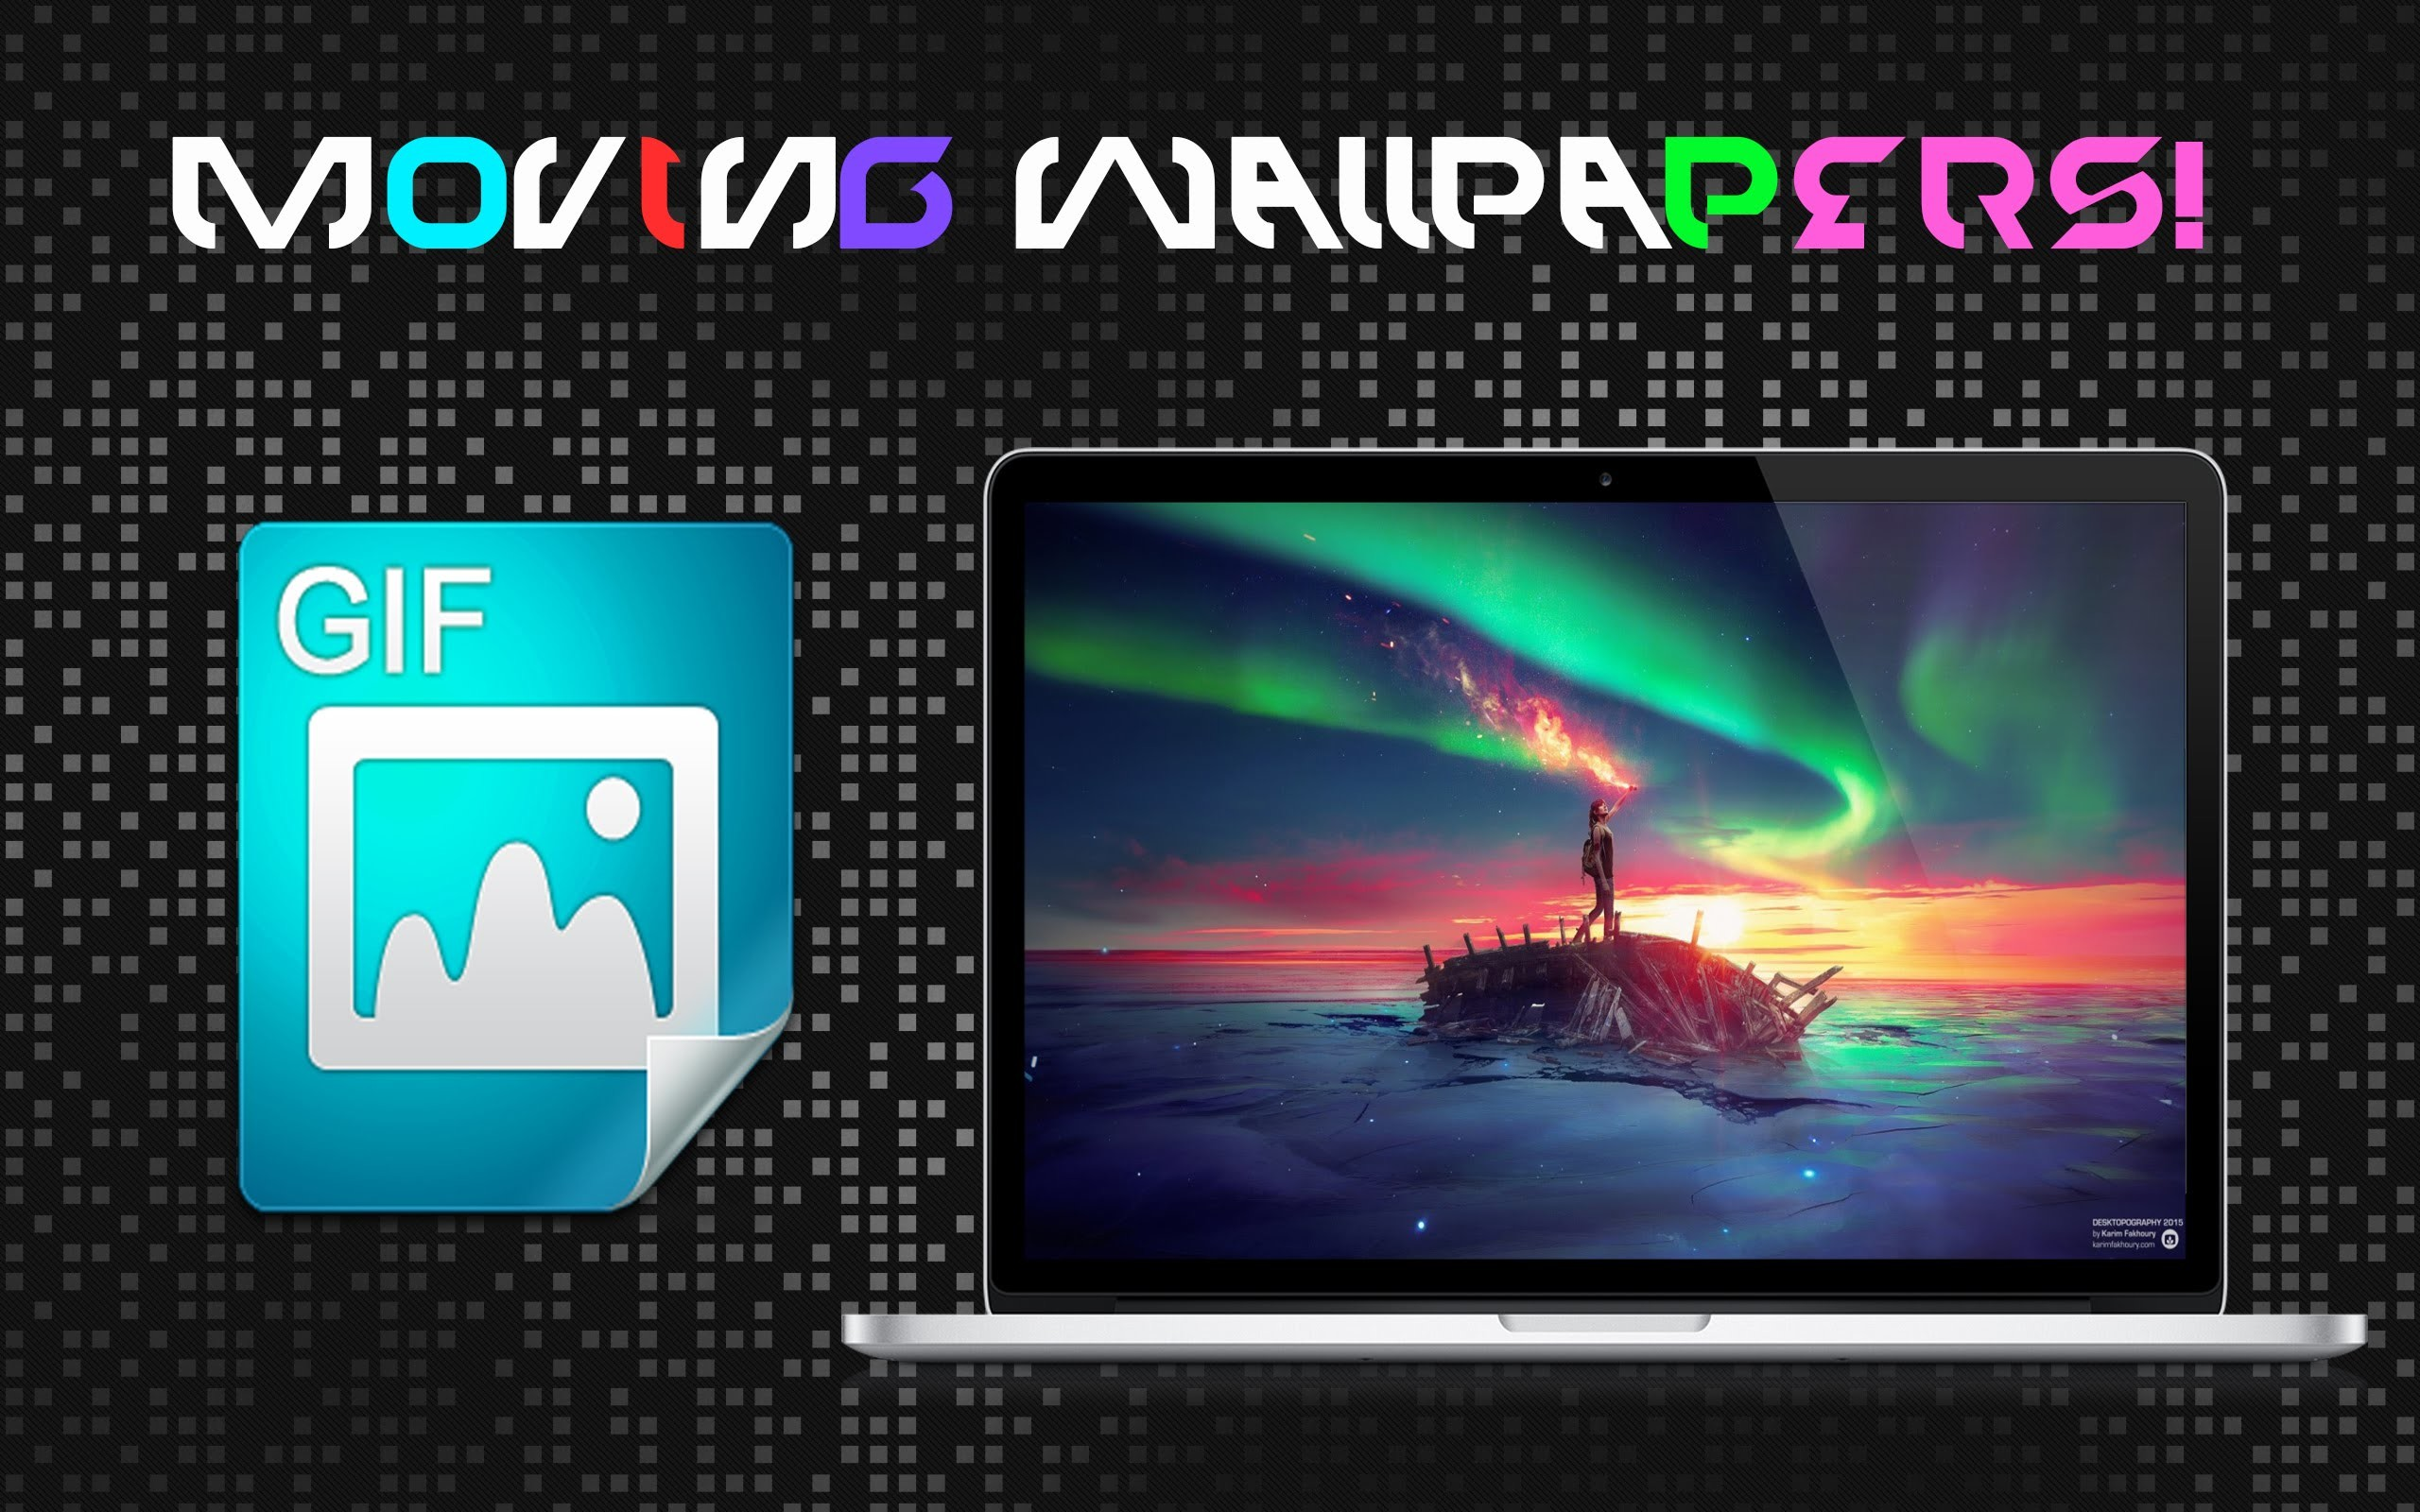 Free Download Animated Wallpapers For Windows 7 Ultimate - Flat Panel Display , HD Wallpaper & Backgrounds